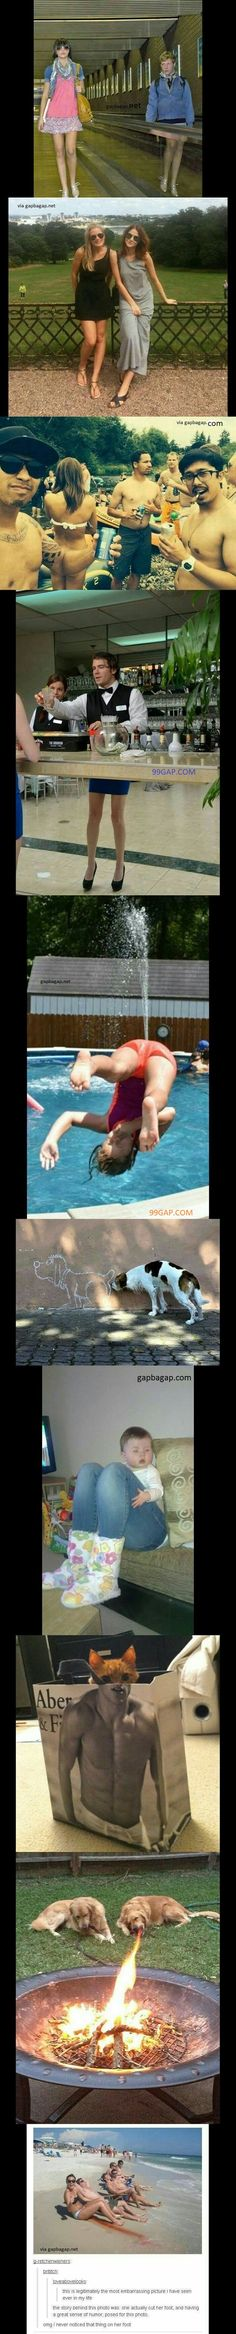 Perfectly Timed #FunnyPictures Collection From Around The World